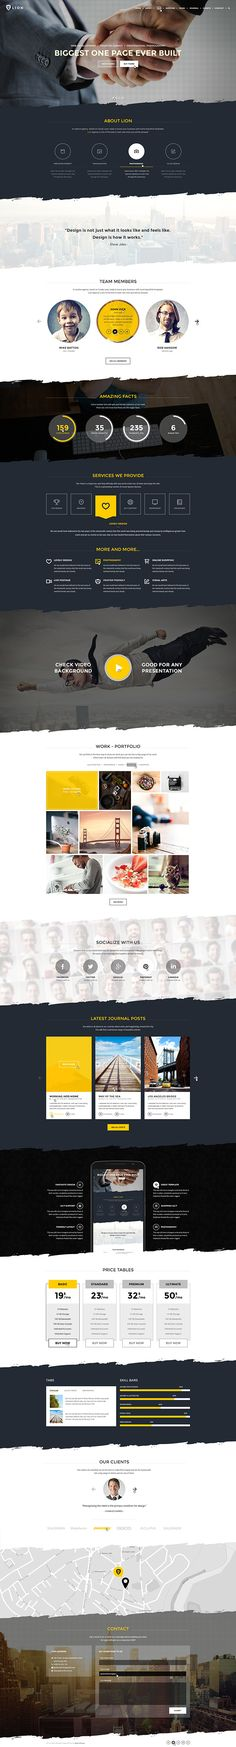 Lion - Multipurpose One Page Template on Behance